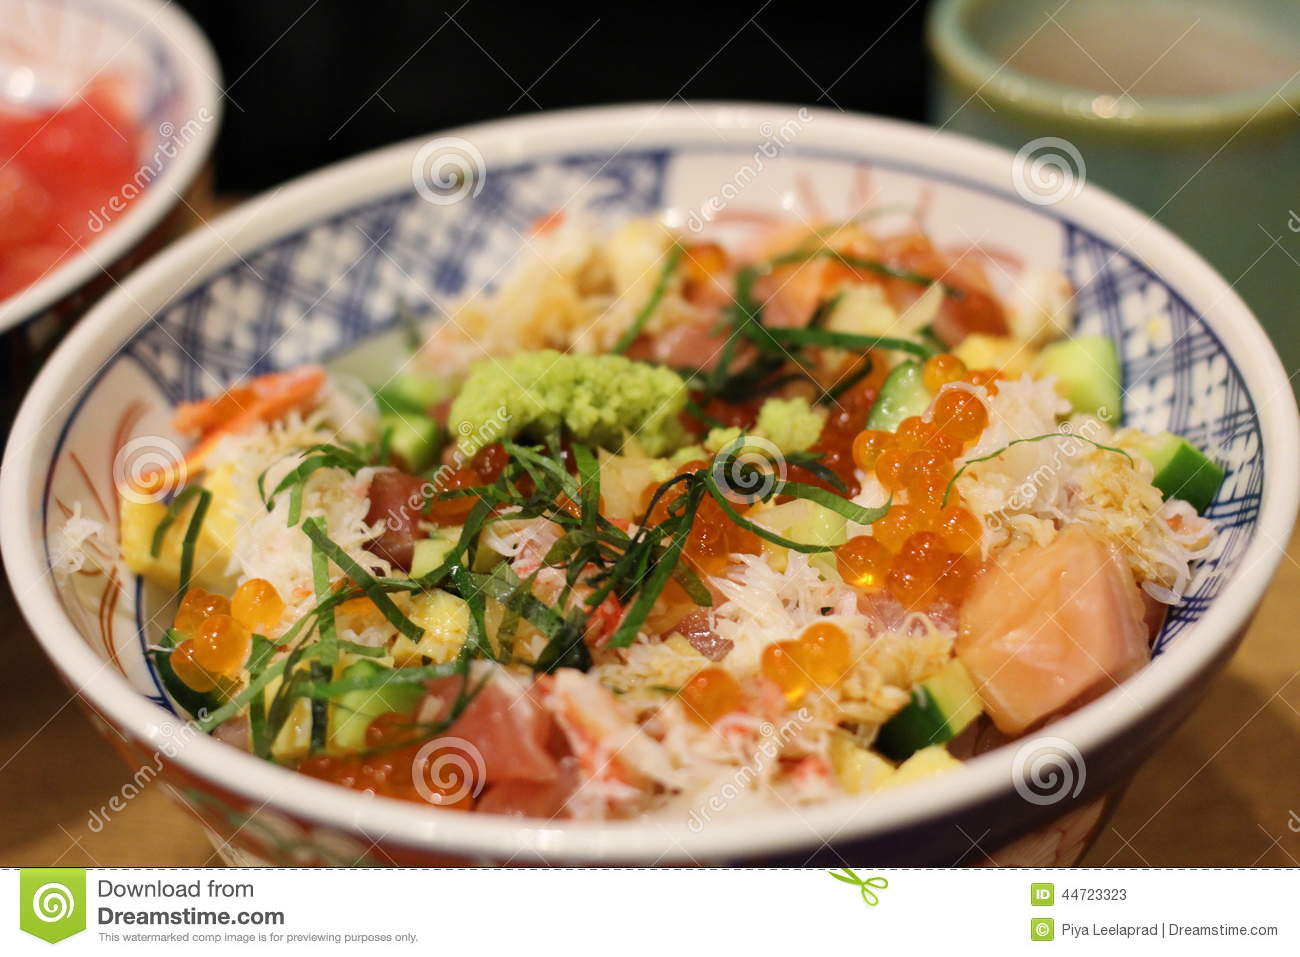 Tasty chirashi don stock photo image 44723323 for Cuisine western